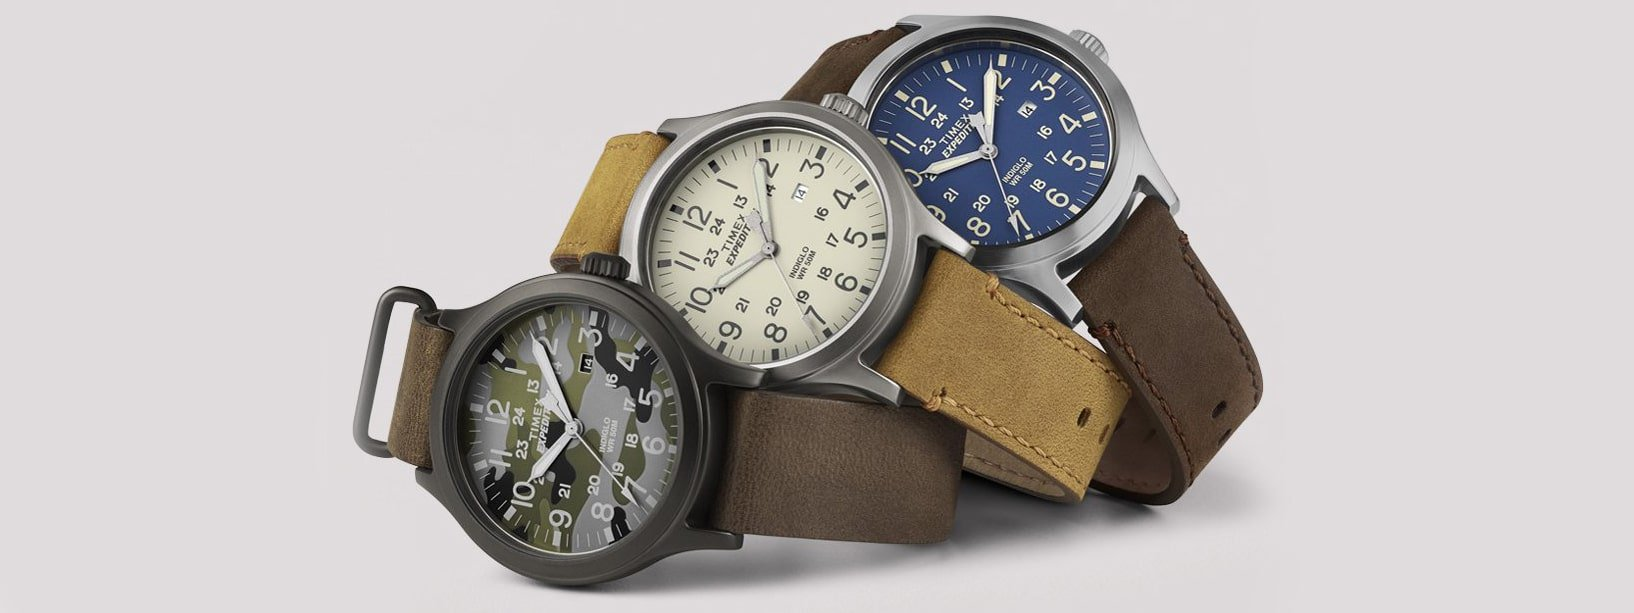 Timex expedition scout - outdoorowe